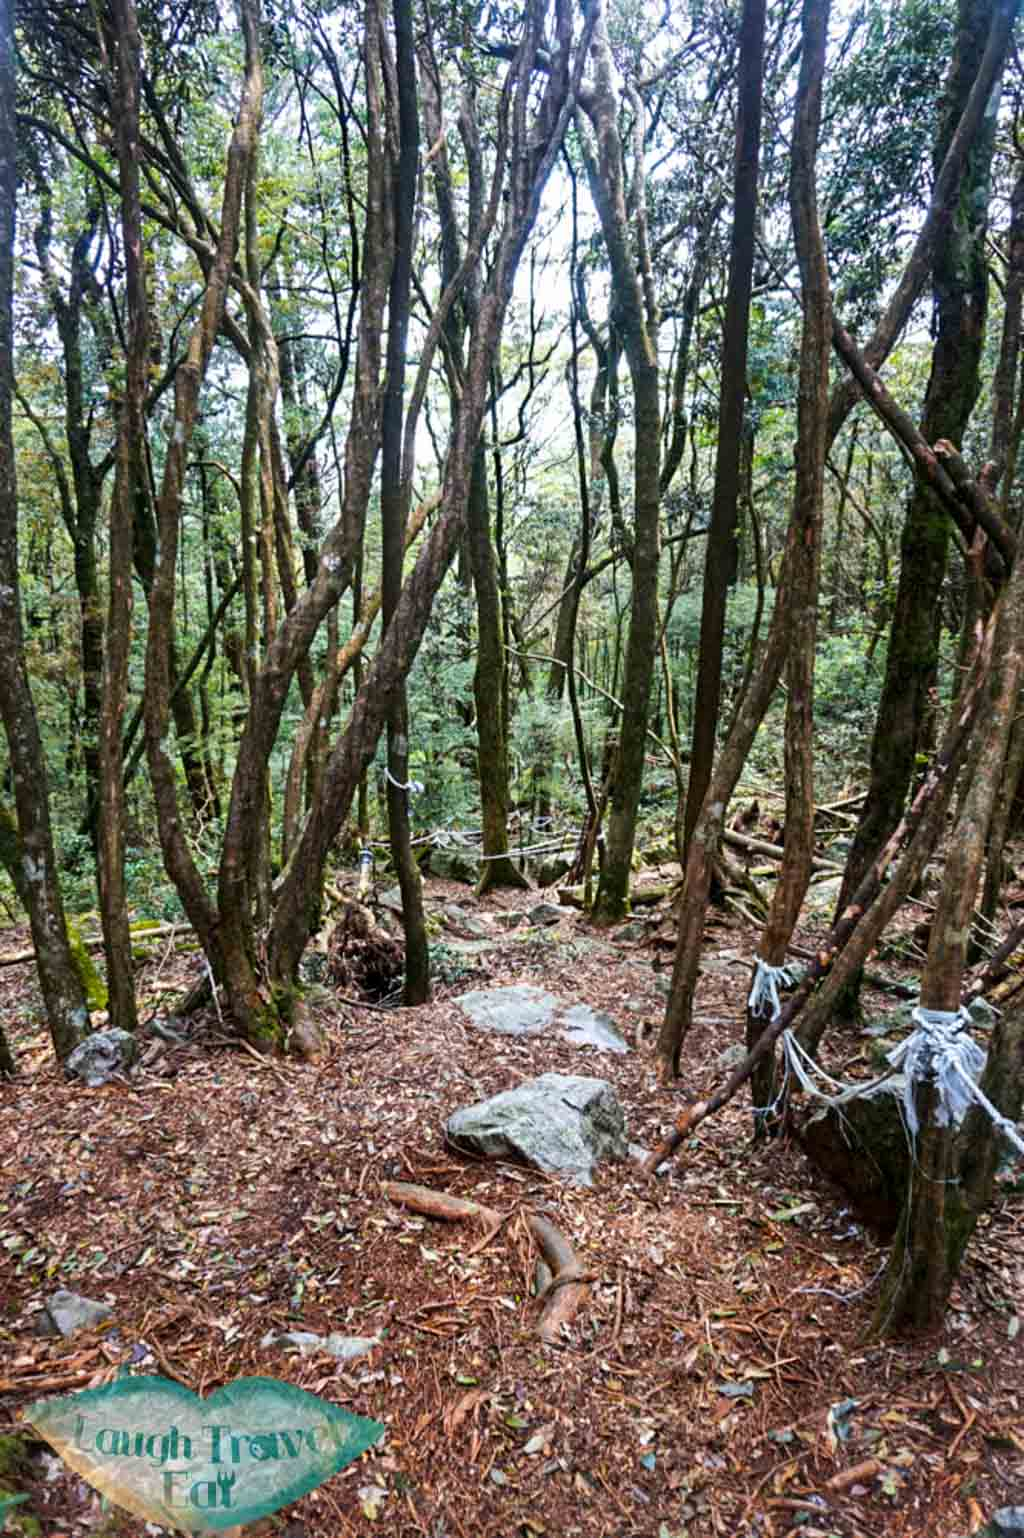 Pathway down from Yuan Zui Mountain in Dasyueshan National Forest Recreational Area, Taichung - Laugh Travel Eat